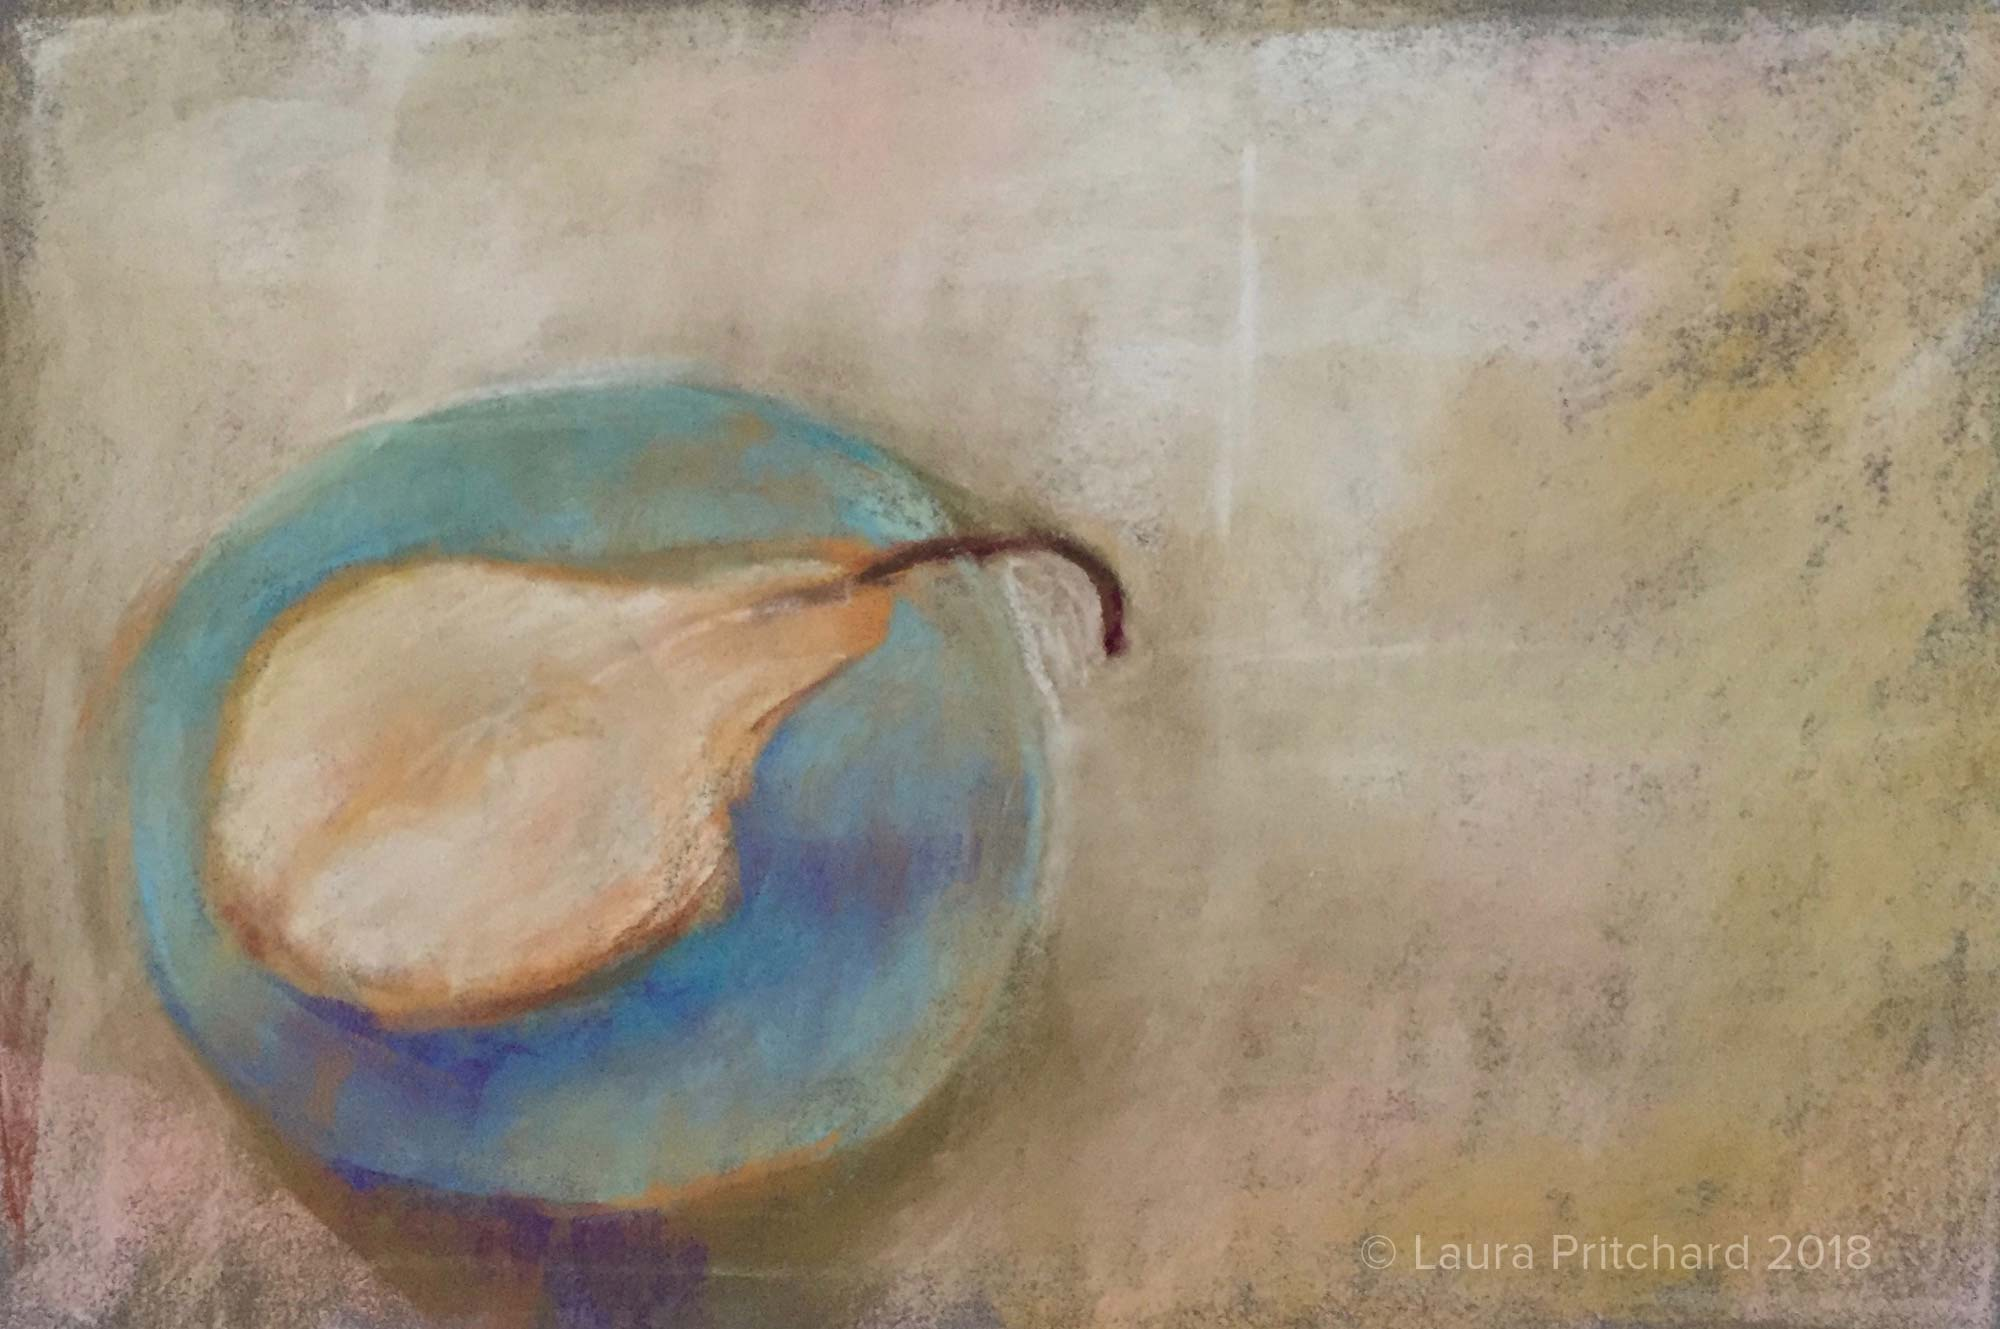 2016. Pear on blue saucer.